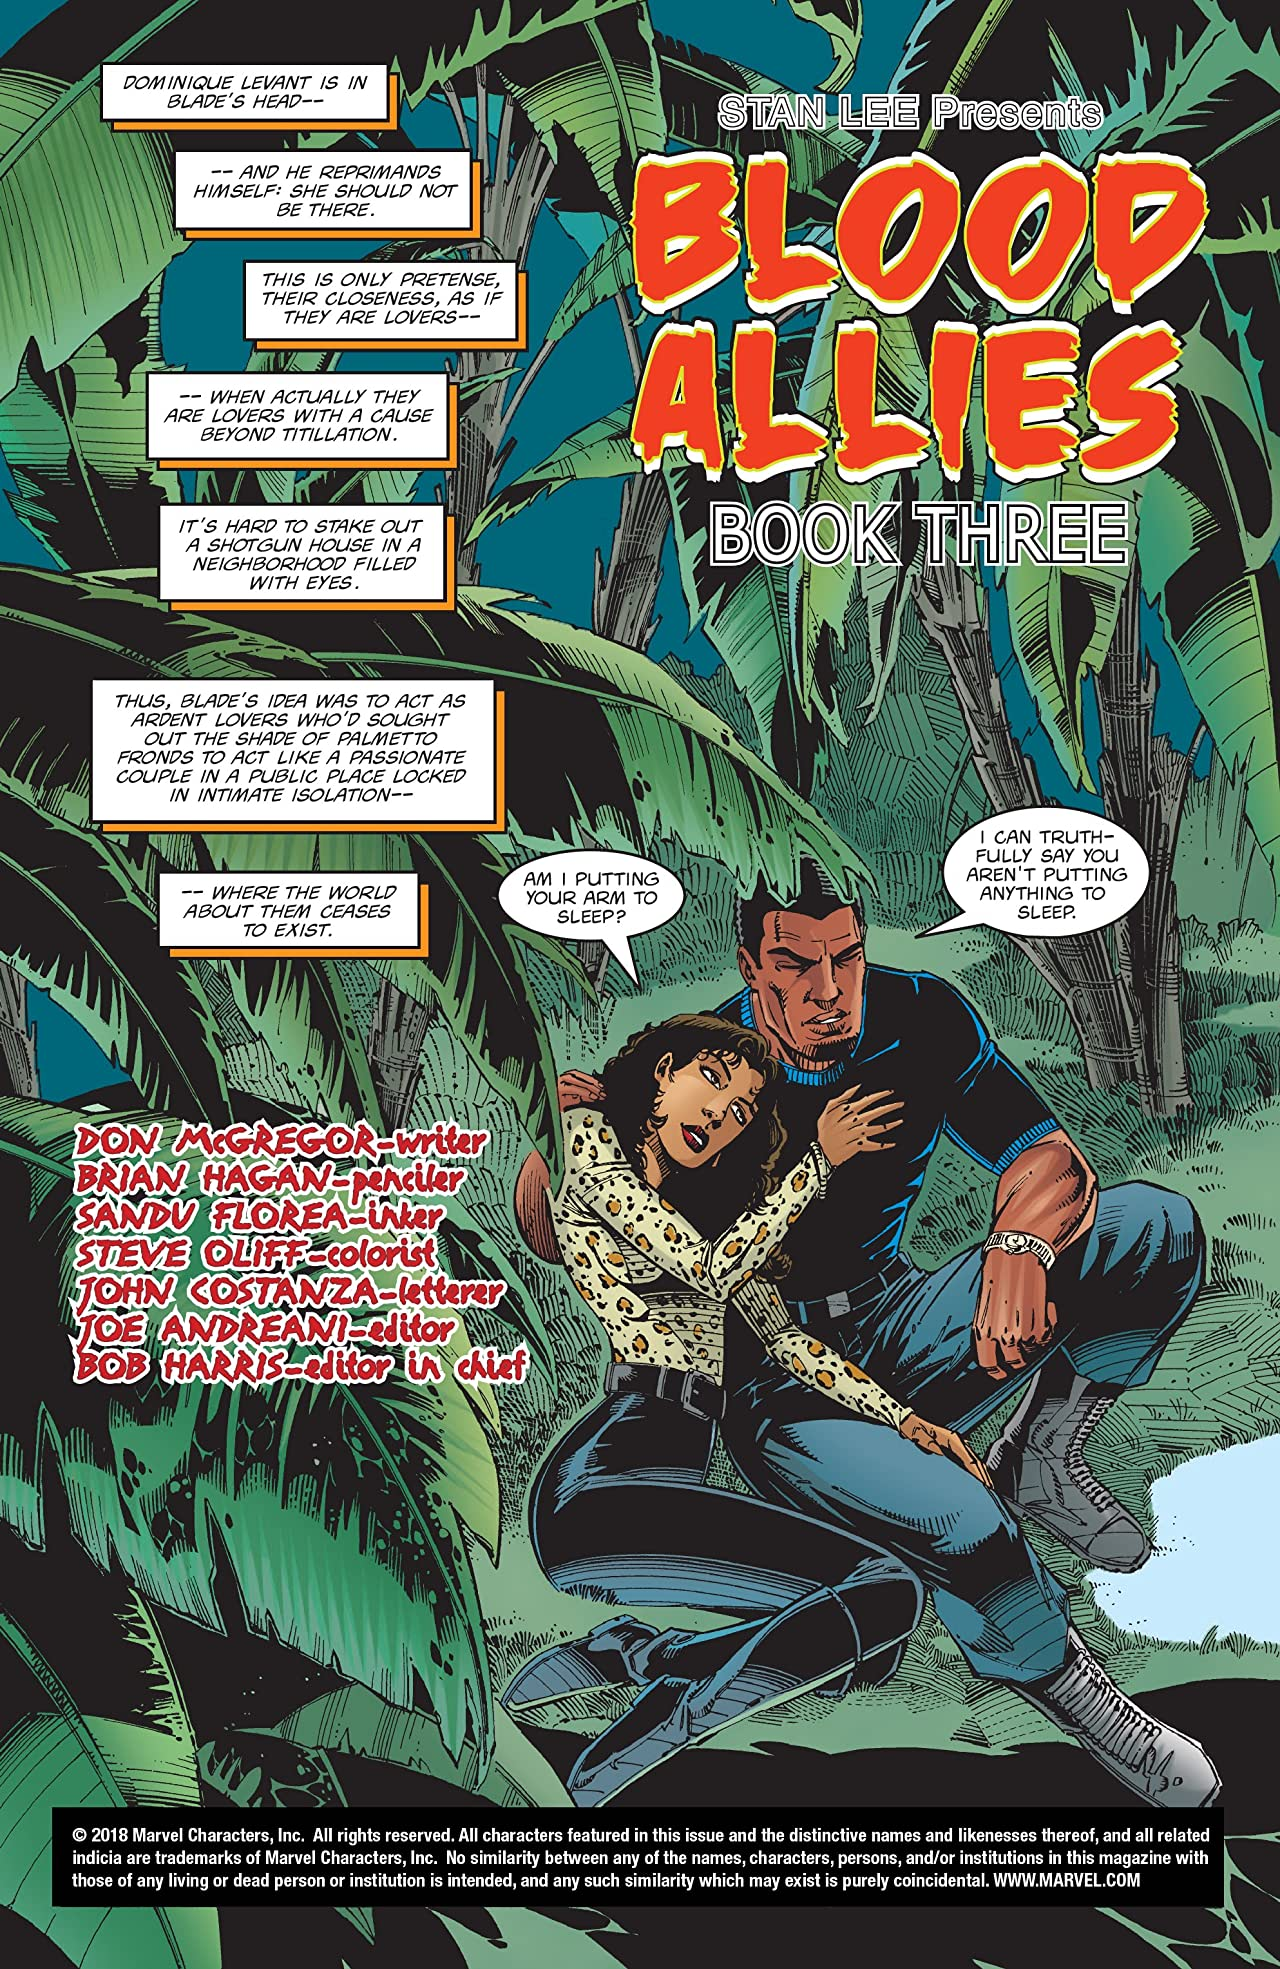 Blade (1998-1999) #3 (of 3)